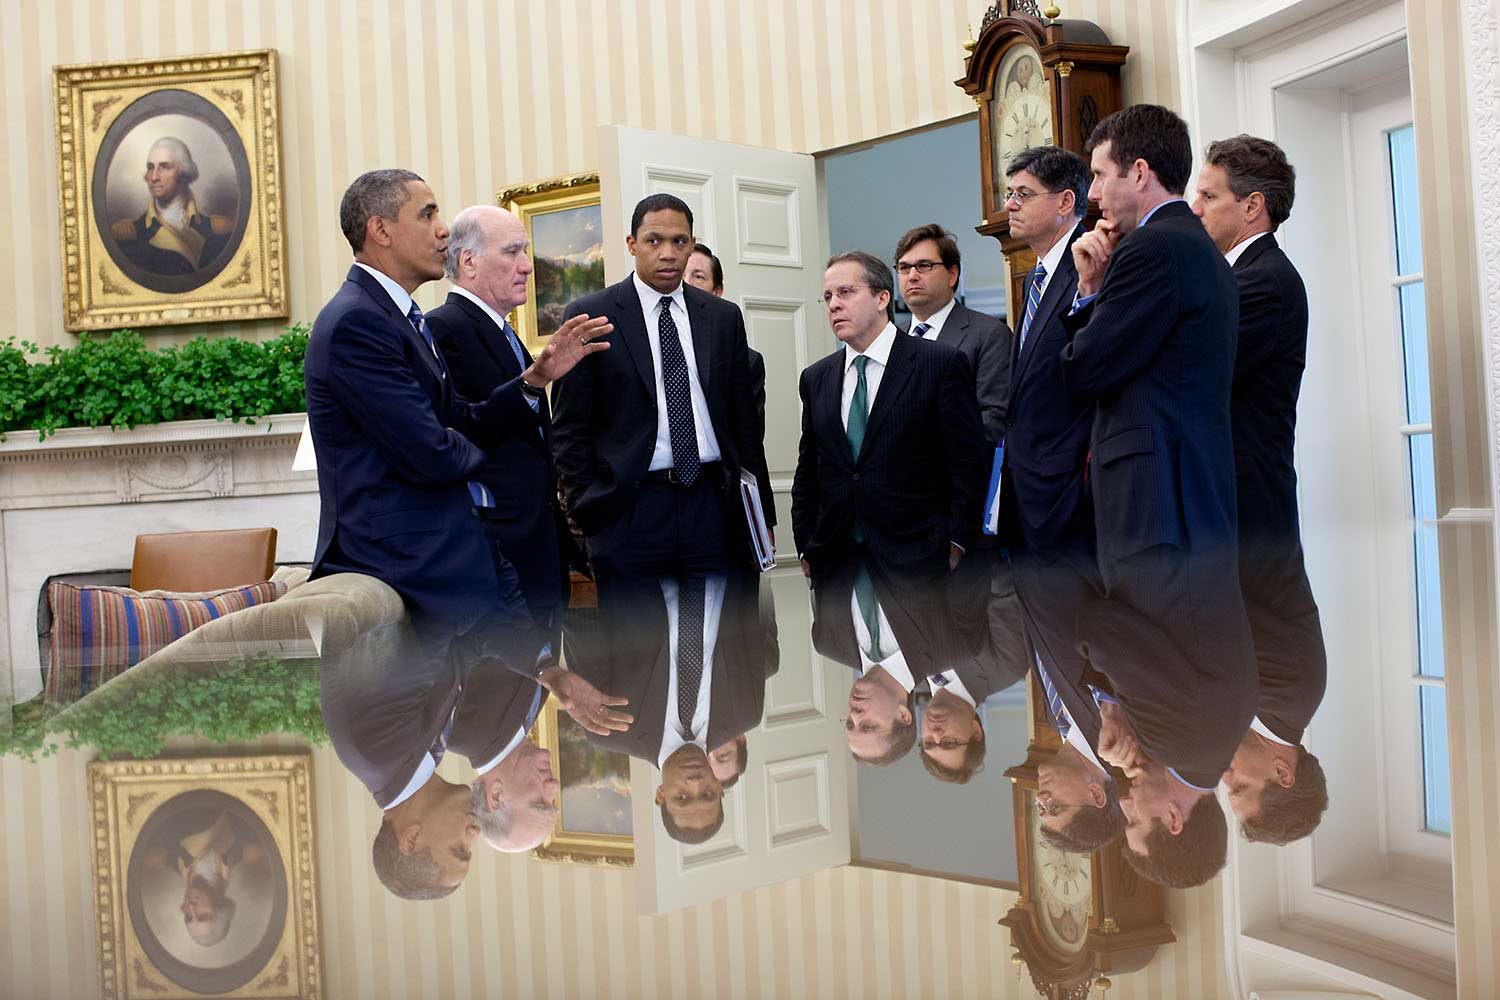 The reflection in this photo (since so many people ask me) was taken with my camera just above a small glass-topped table in the Oval Office as the President talked with members of his staff following a meeting with the Congressional leadership, July 7, 2011.